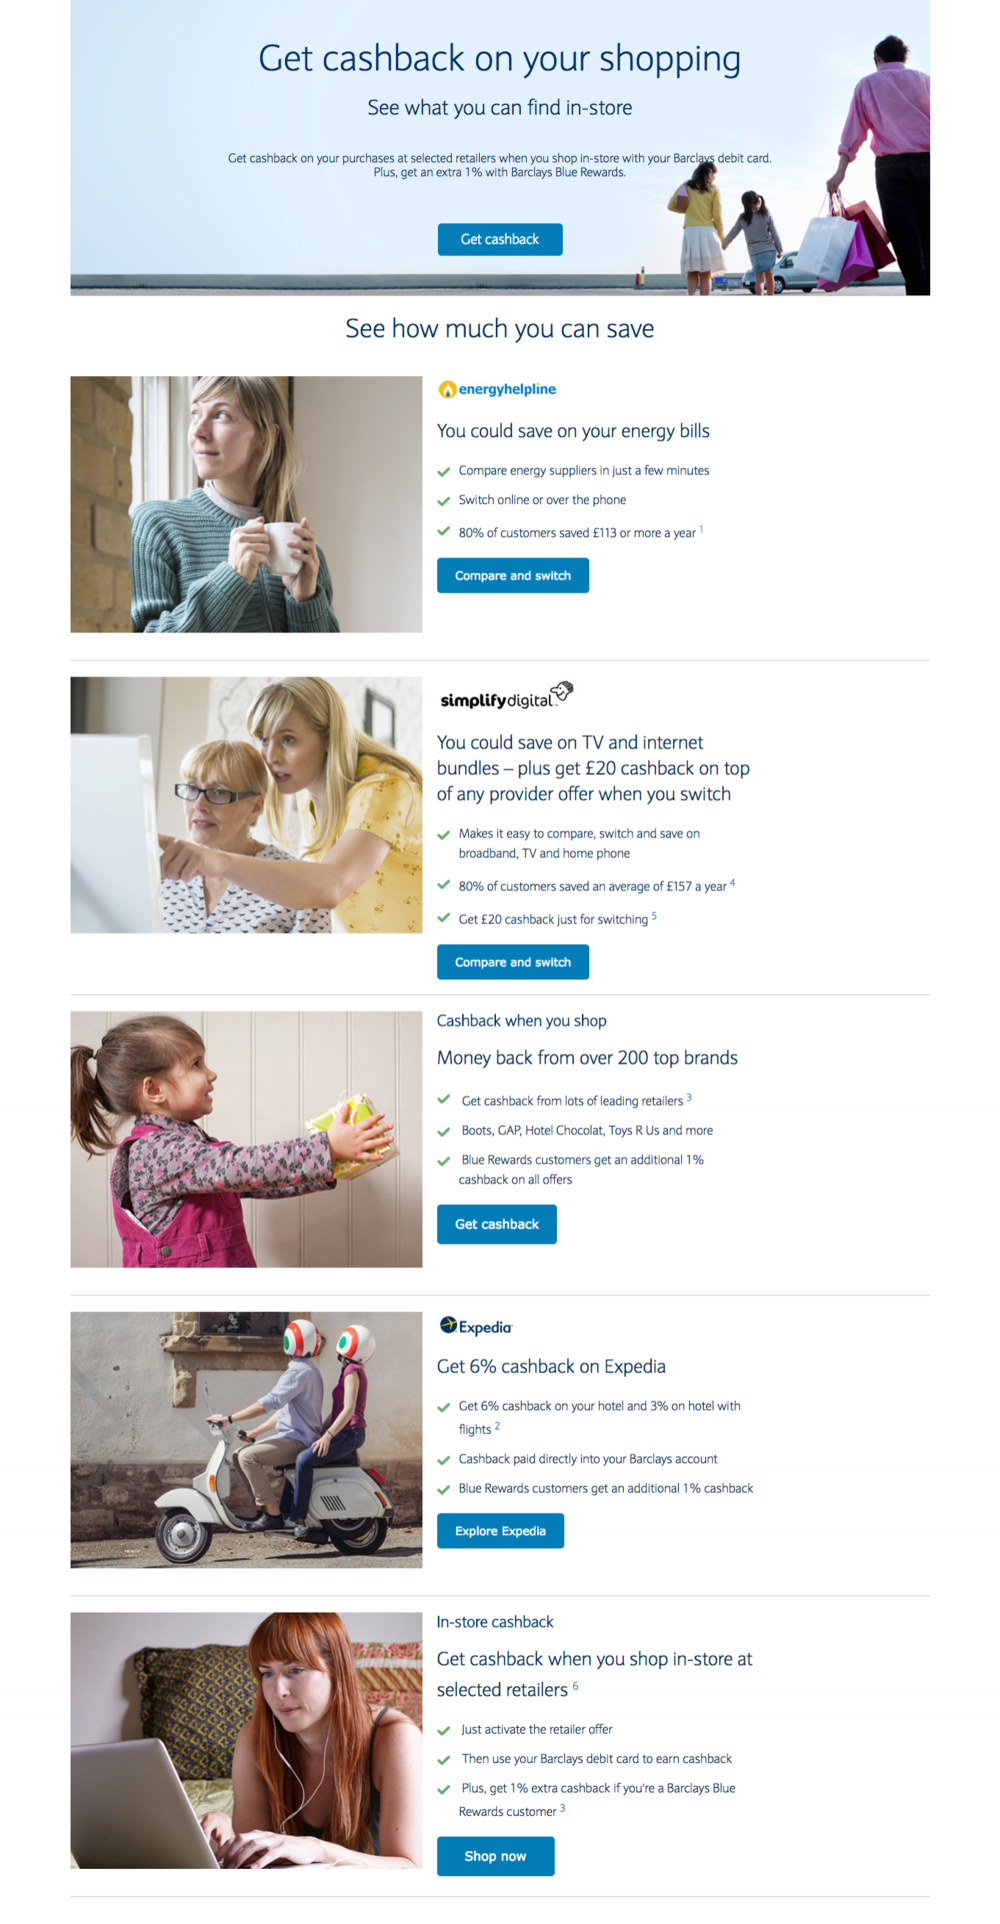 barclays rewards landing page.png